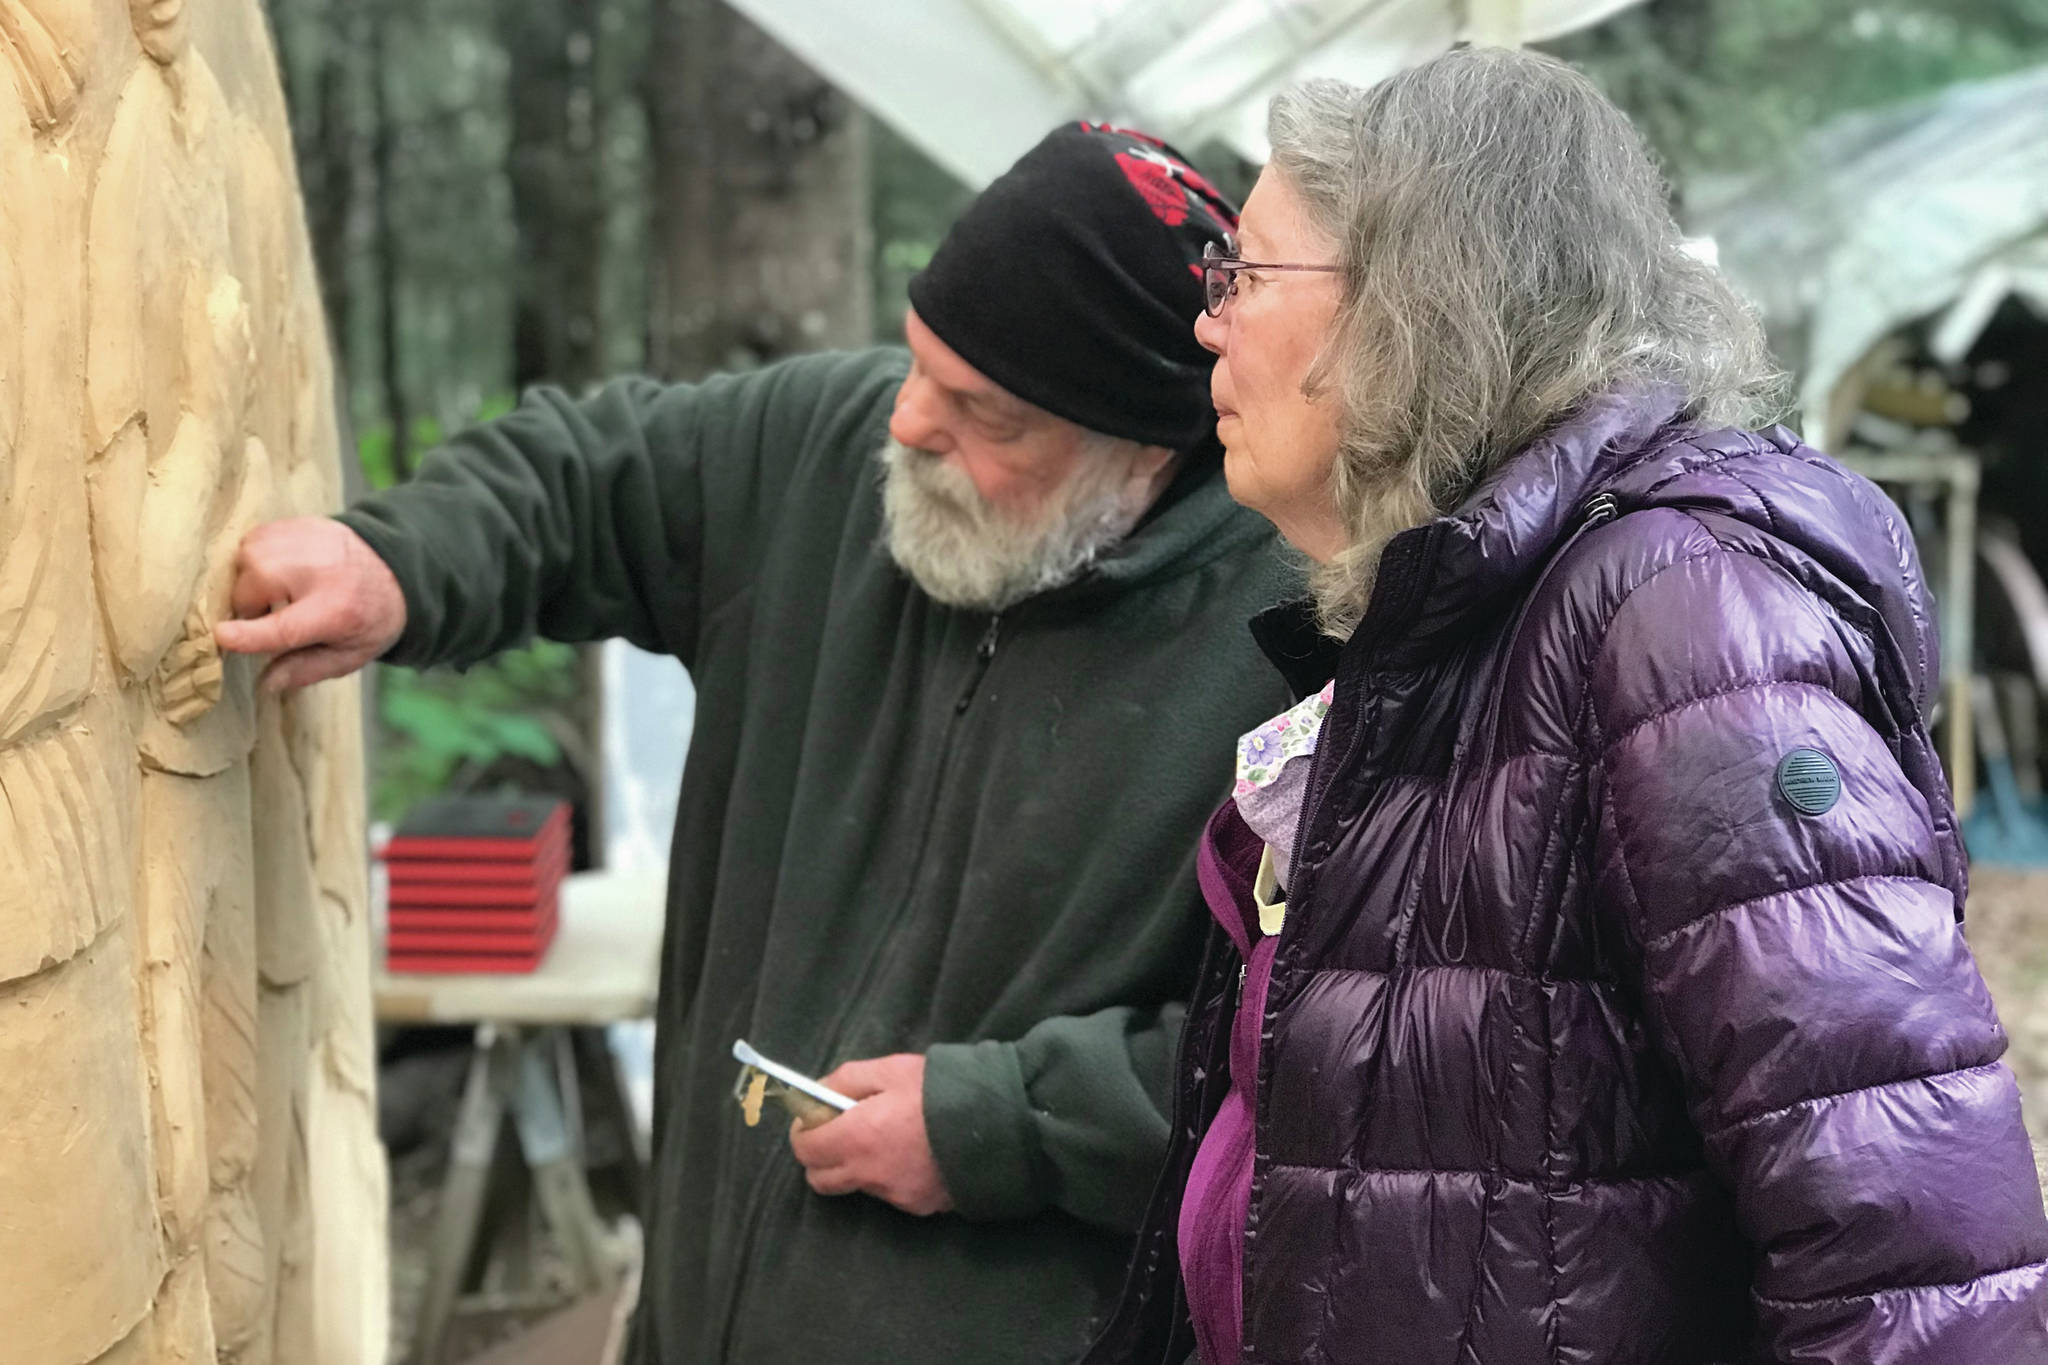 Sara Berg, right, talks with artist Brad Hughes, left, at Hughes' Homer, Alaska, studio in June 2021 about the Loved & Lost Memorial Bench project Berg and other family and friends of Anesha Murnane commissioned to honor Murnane and other missing woman and children. (Photo by Christina Whiting)